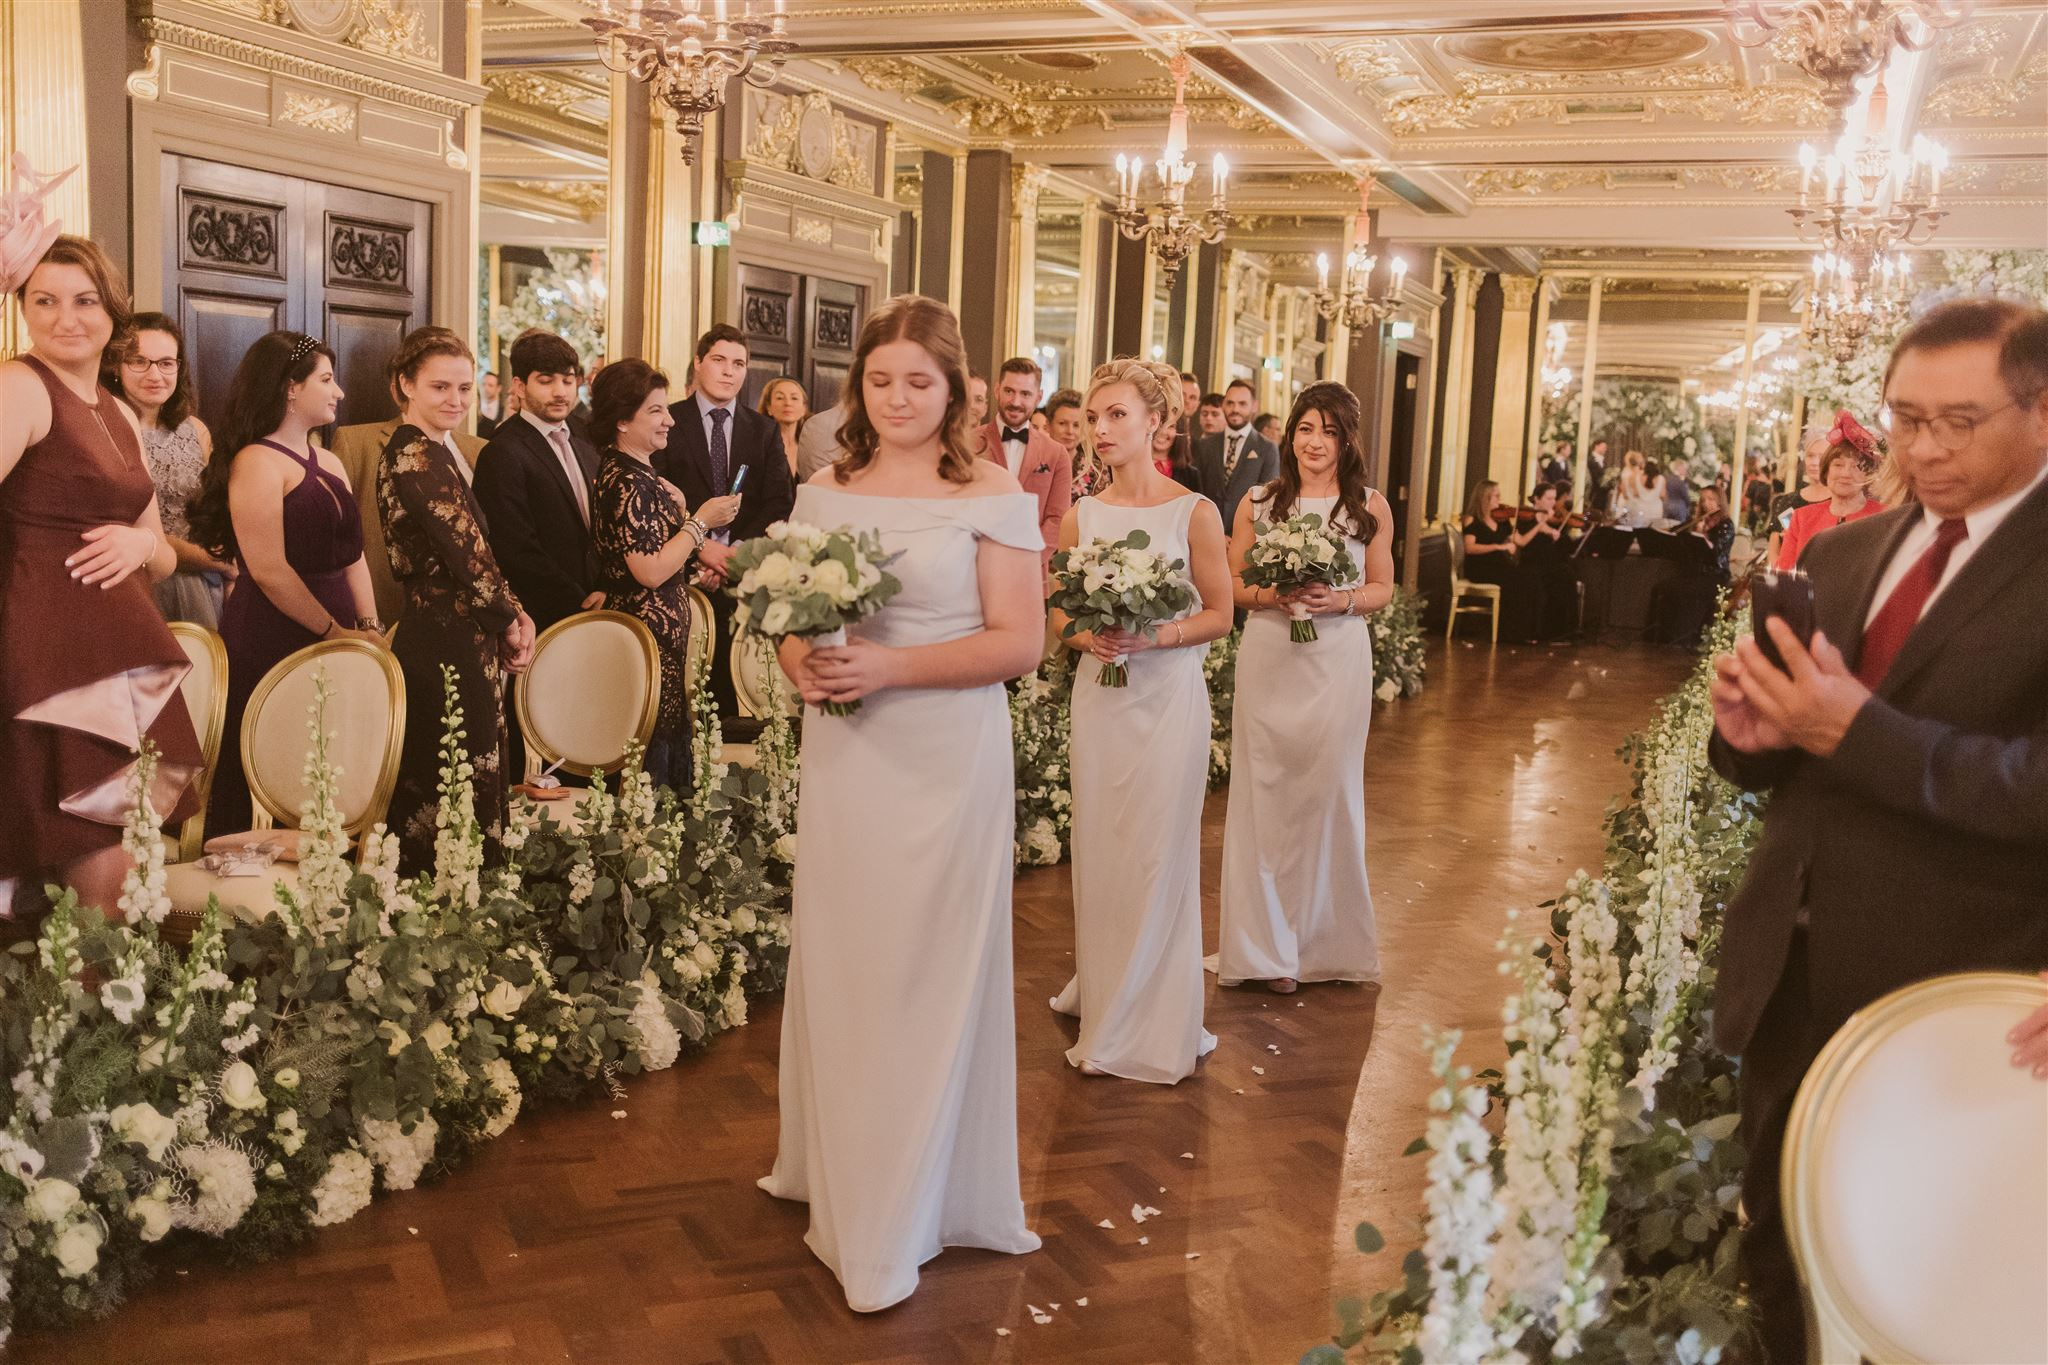 Bridesmaids bouquets at Cafe Royal, London